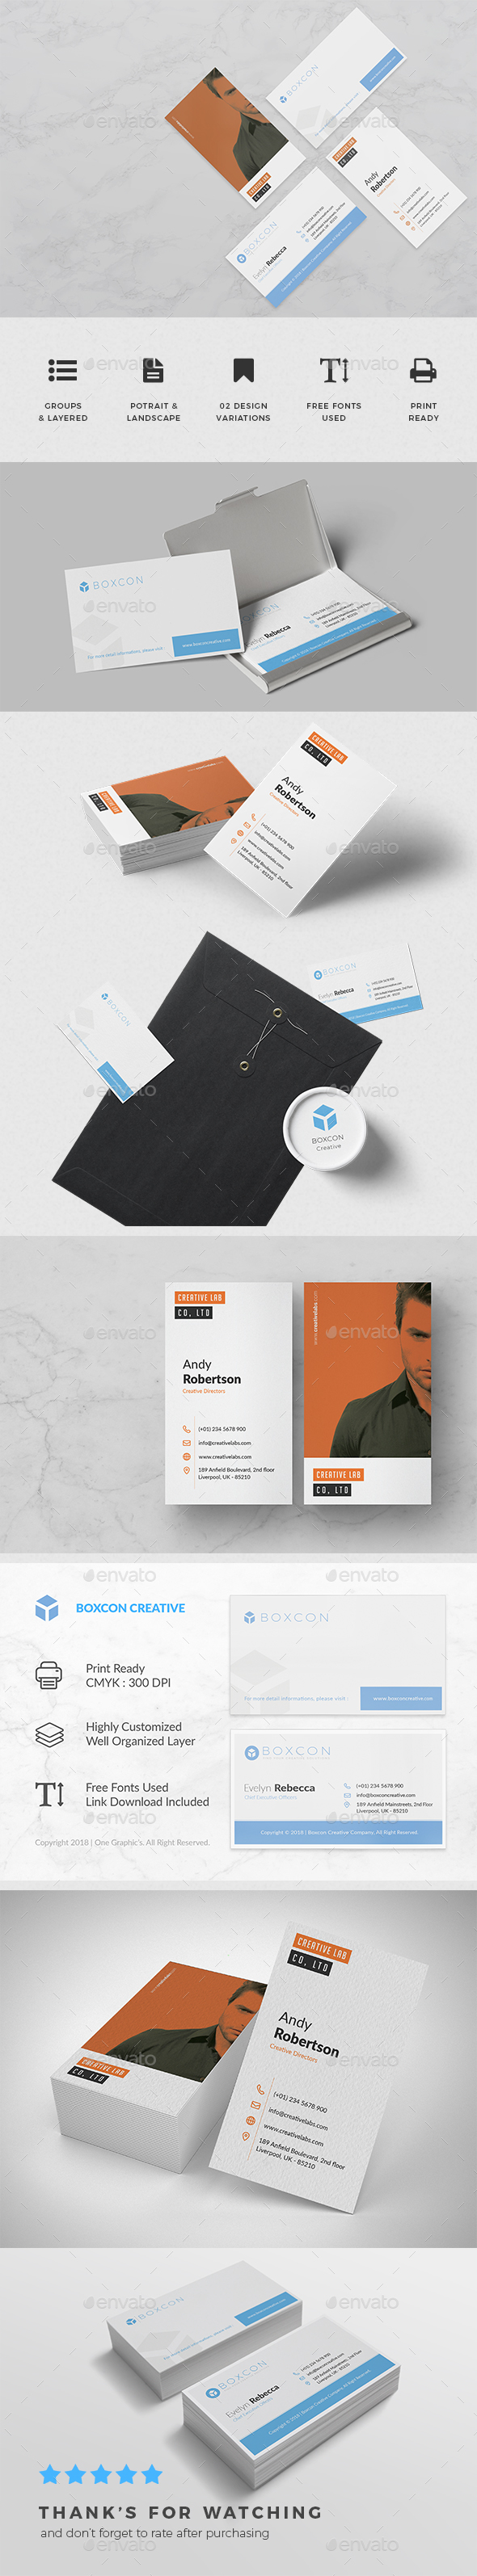 Minimalist business card vol 05 by onegraphics graphicriver minimalist business card vol 05 business cards print templates reheart Choice Image